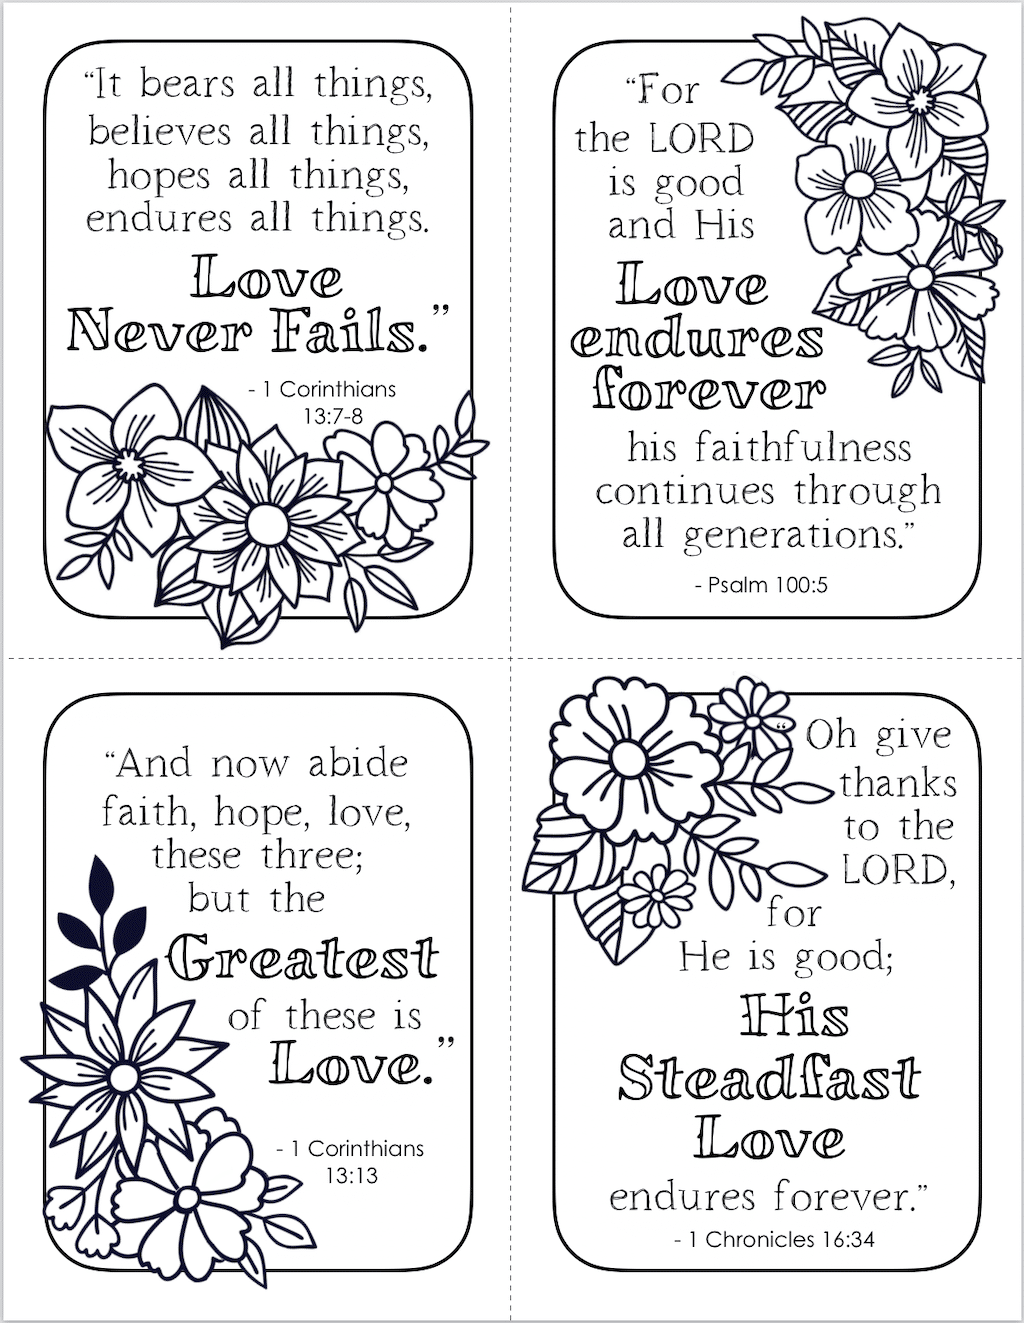 Free Printable Steadfast Love Valentines to Color